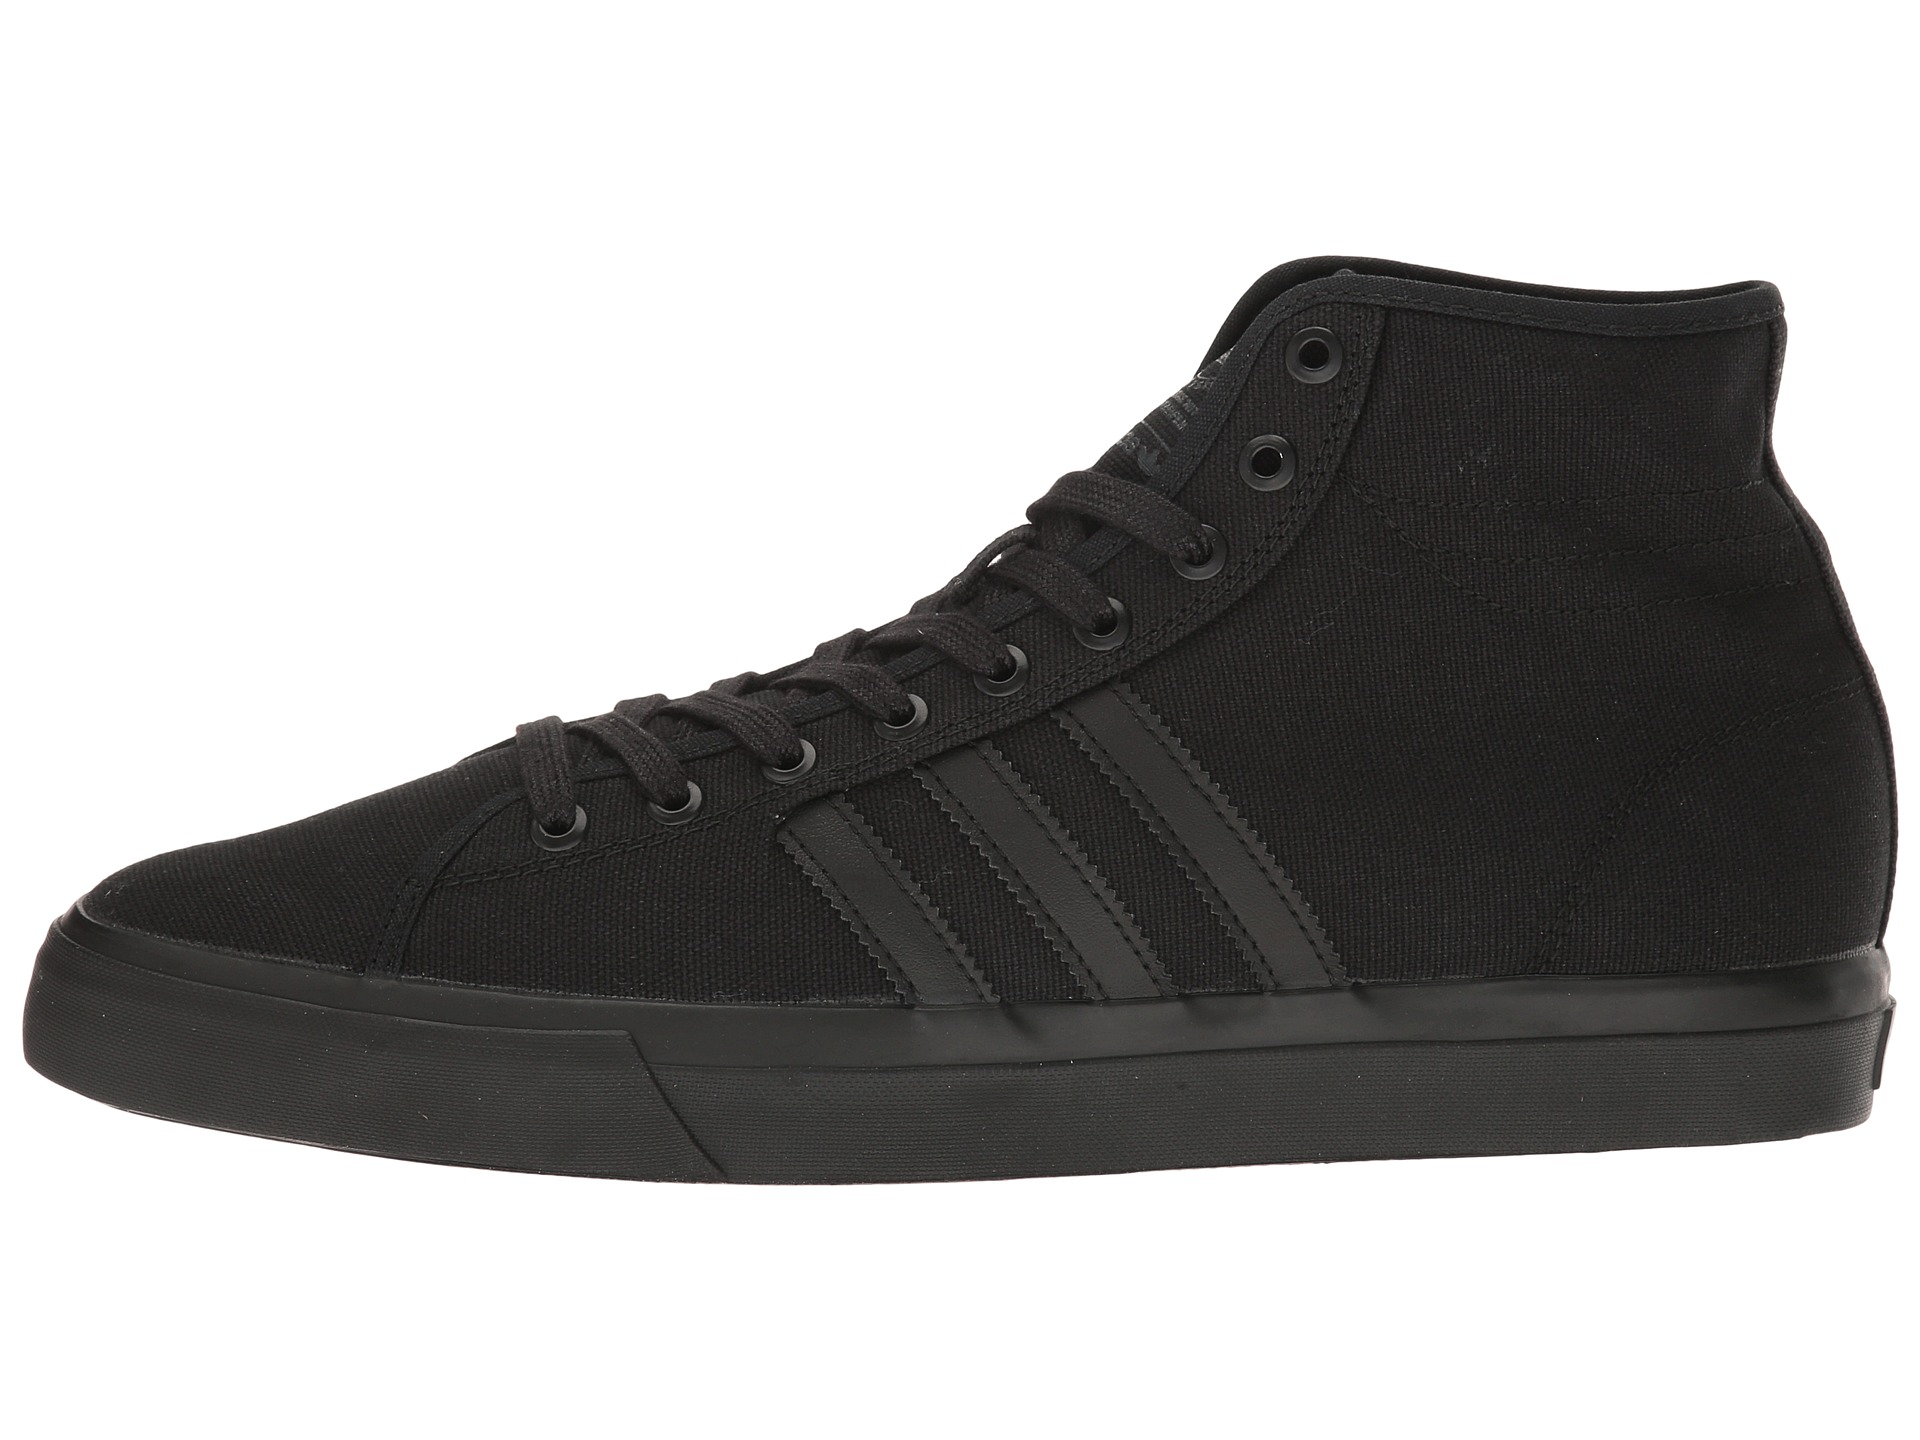 Adidas Men S Matchcourt Mid X Welcome Skate Shoe Welcome